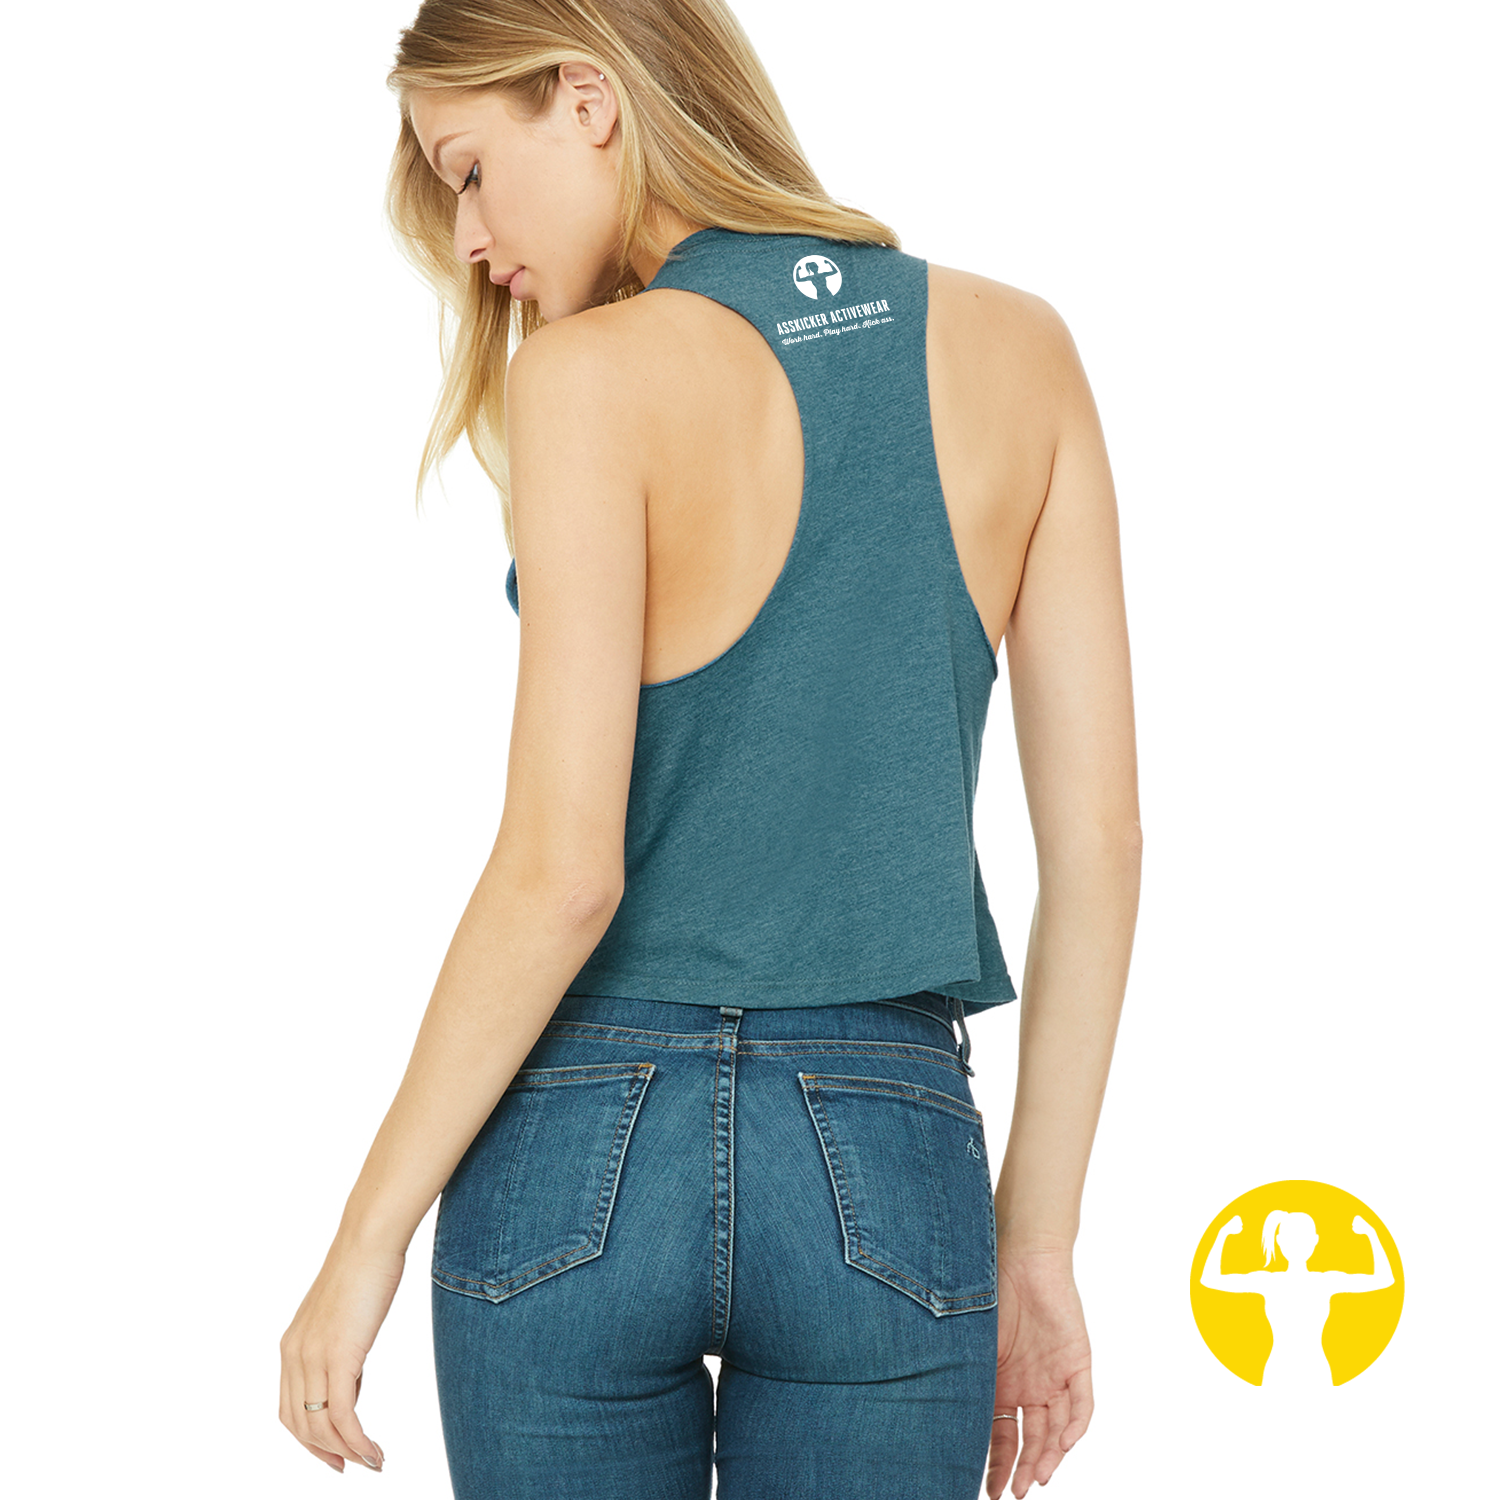 Cropped racerback tank top - teal